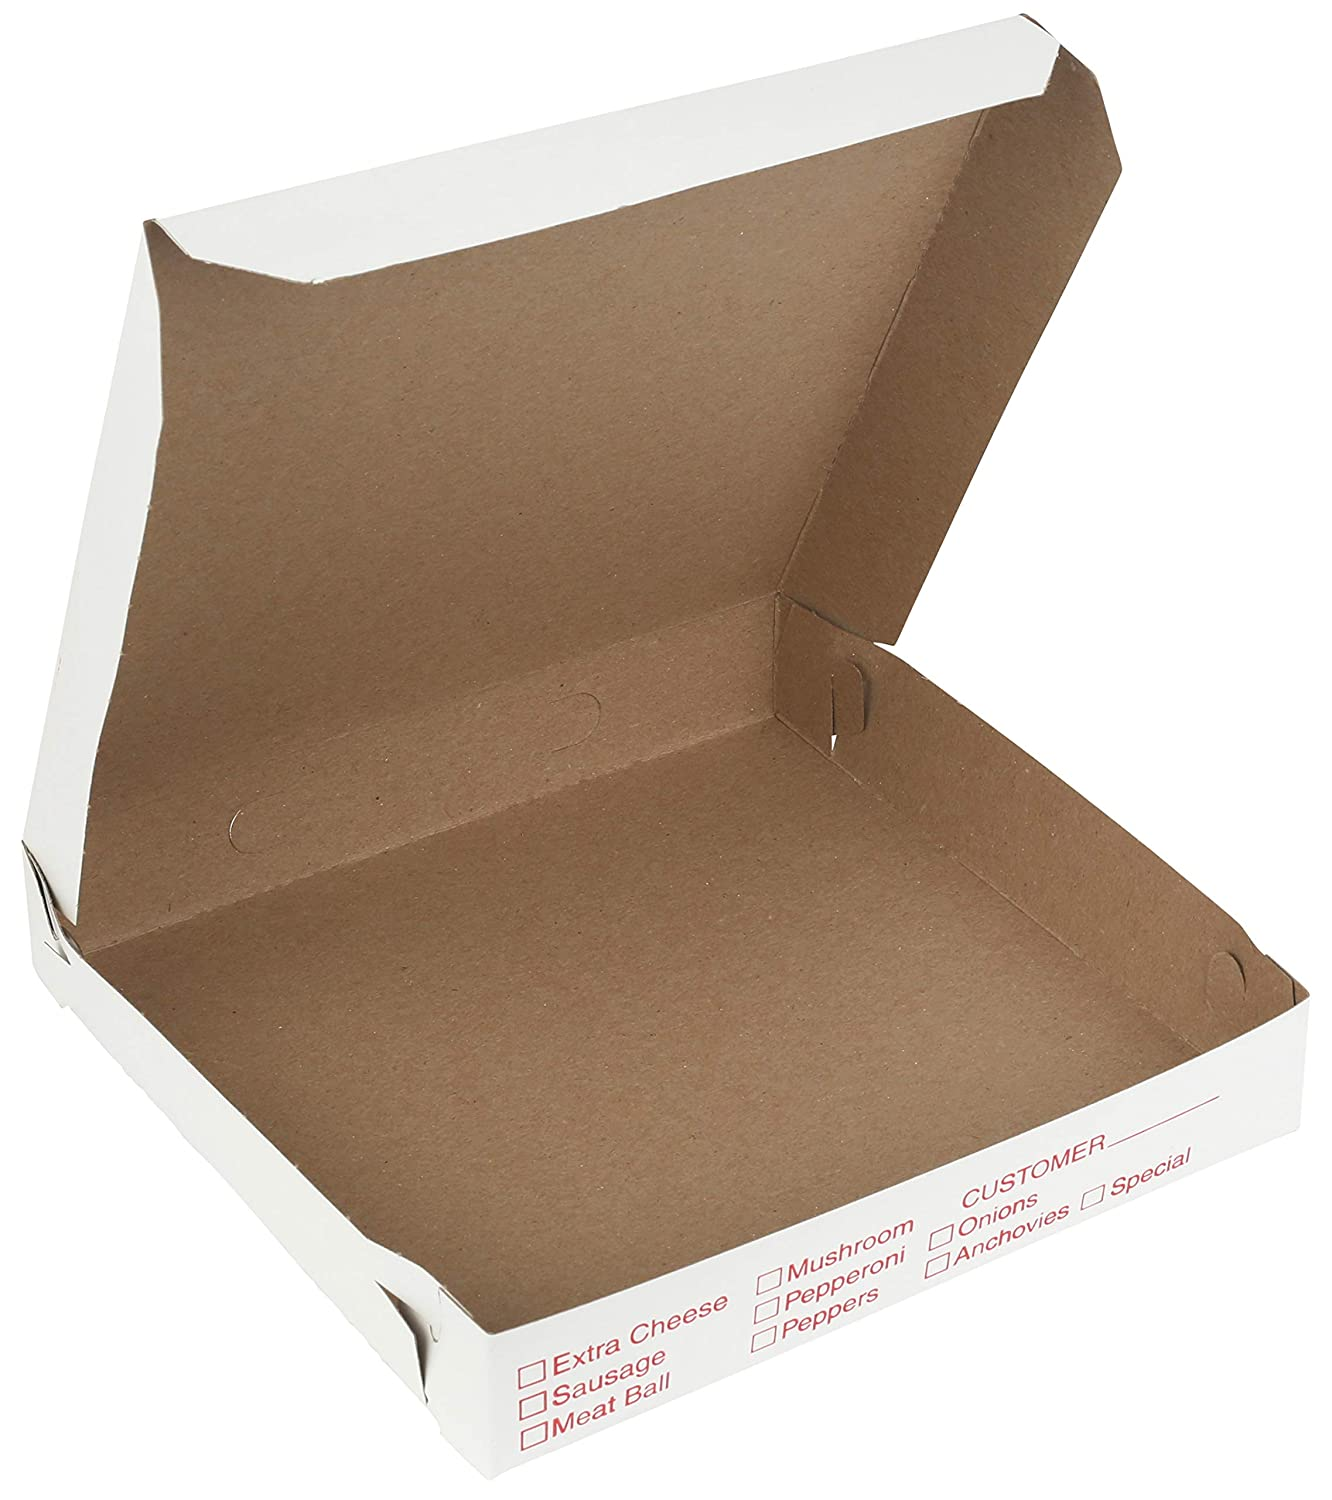 20 Pieces 10 Length x 10 Width x 1.75 Depth Lock Corner Clay Coated Pizza Box by MT Products